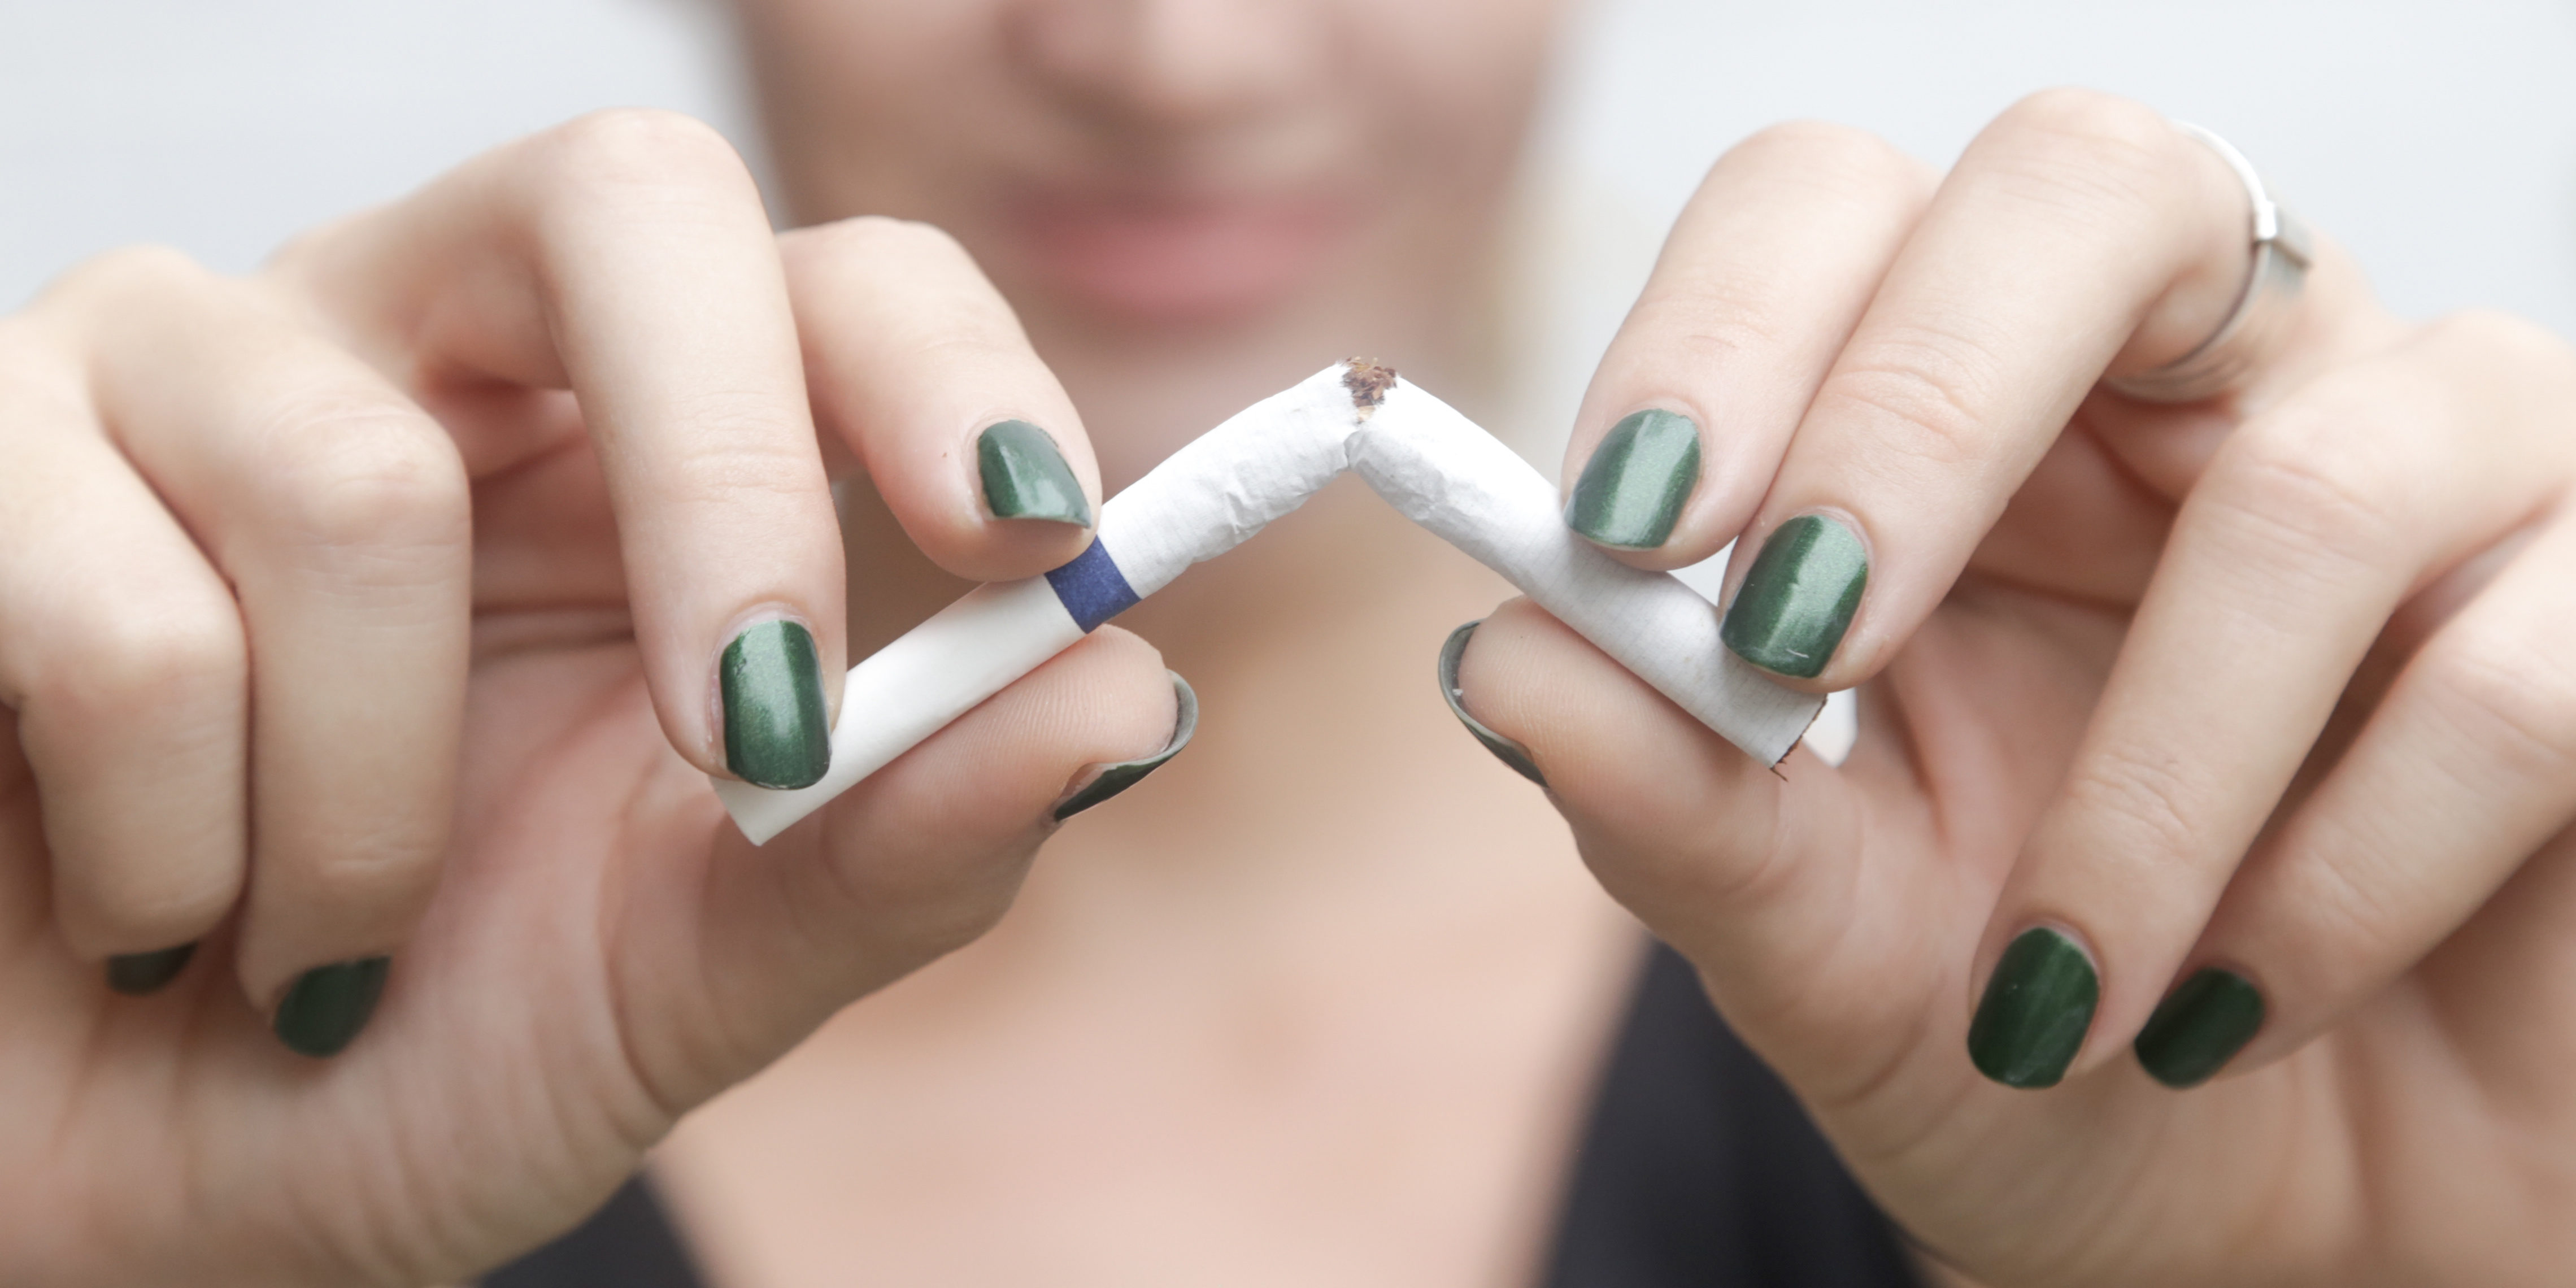 Young woman breaking down cigarette to pieces. - quit smoking concept